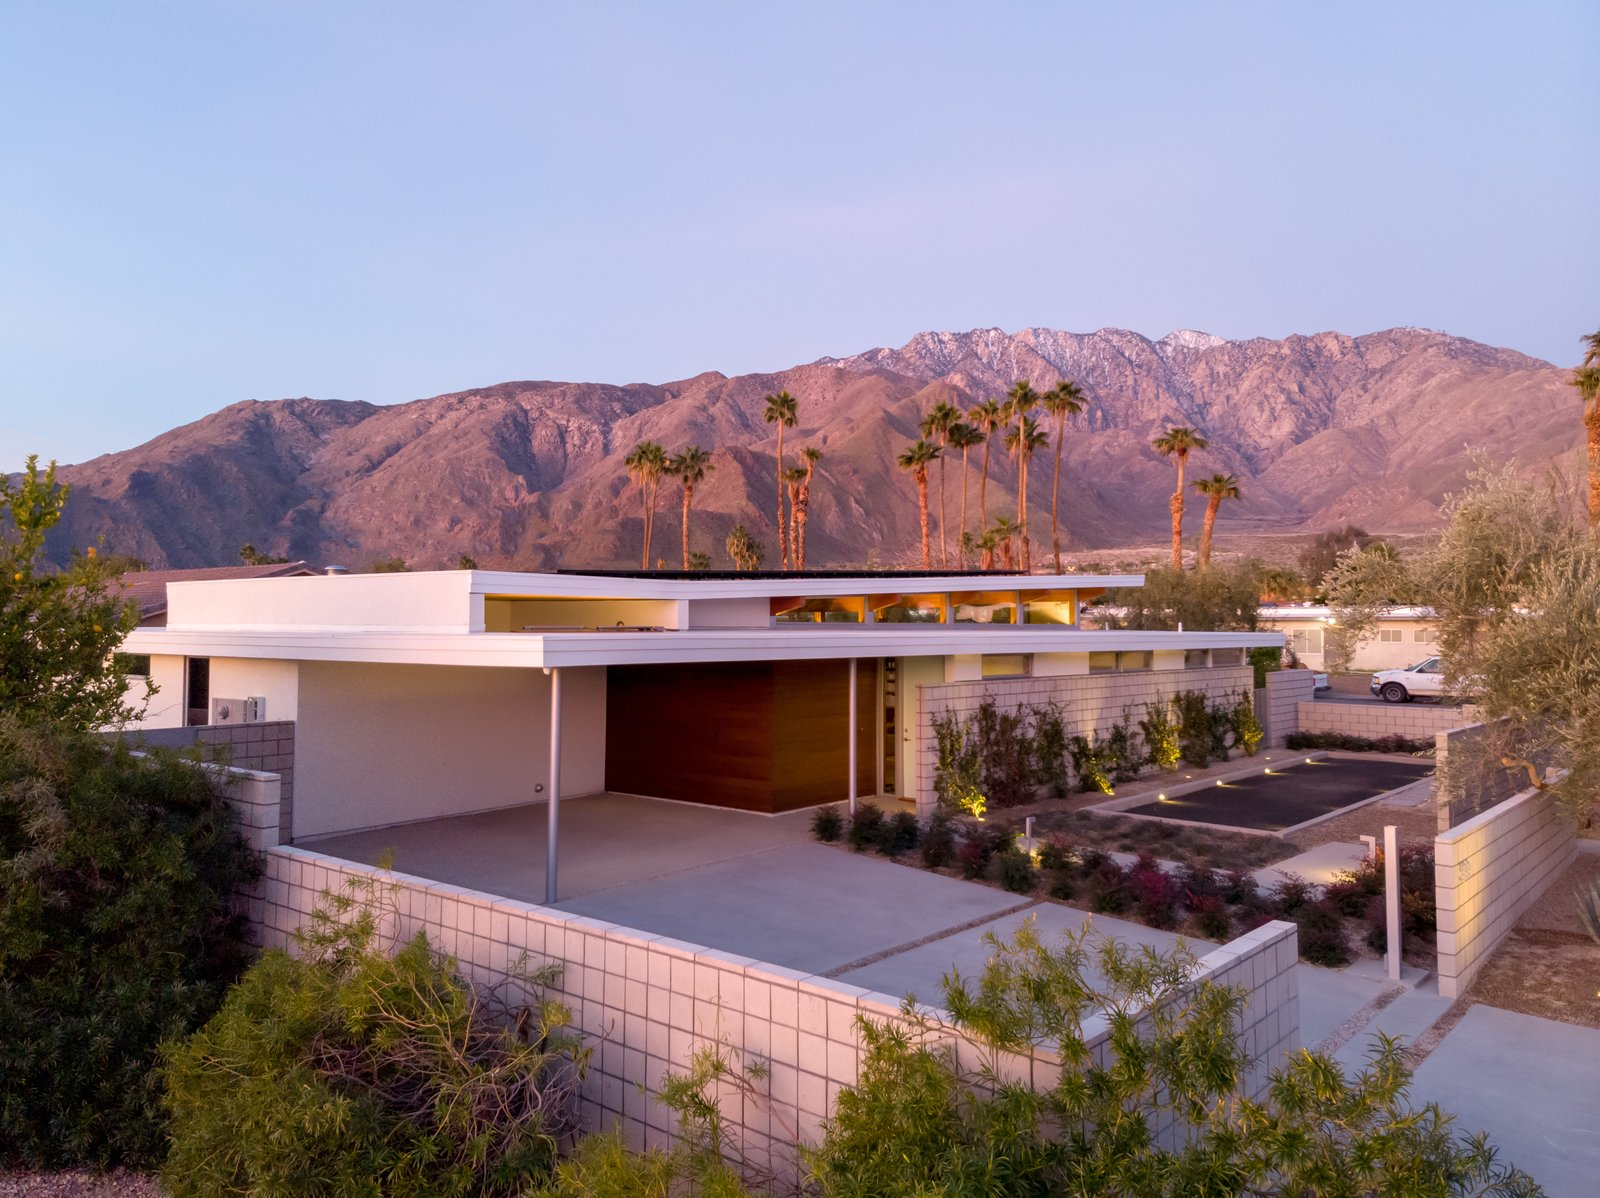 Exterior, Prefab, House, Concrete, Flat, Stone, Stucco, and Metal A peek of the Axiom Desert House from the exterior, with the beautiful San Jacinto mountain range in the distance.  Exterior Stucco Concrete Stone Photos from Step Inside Palm Springs' Latest Indoor/Outdoor Prefab Home